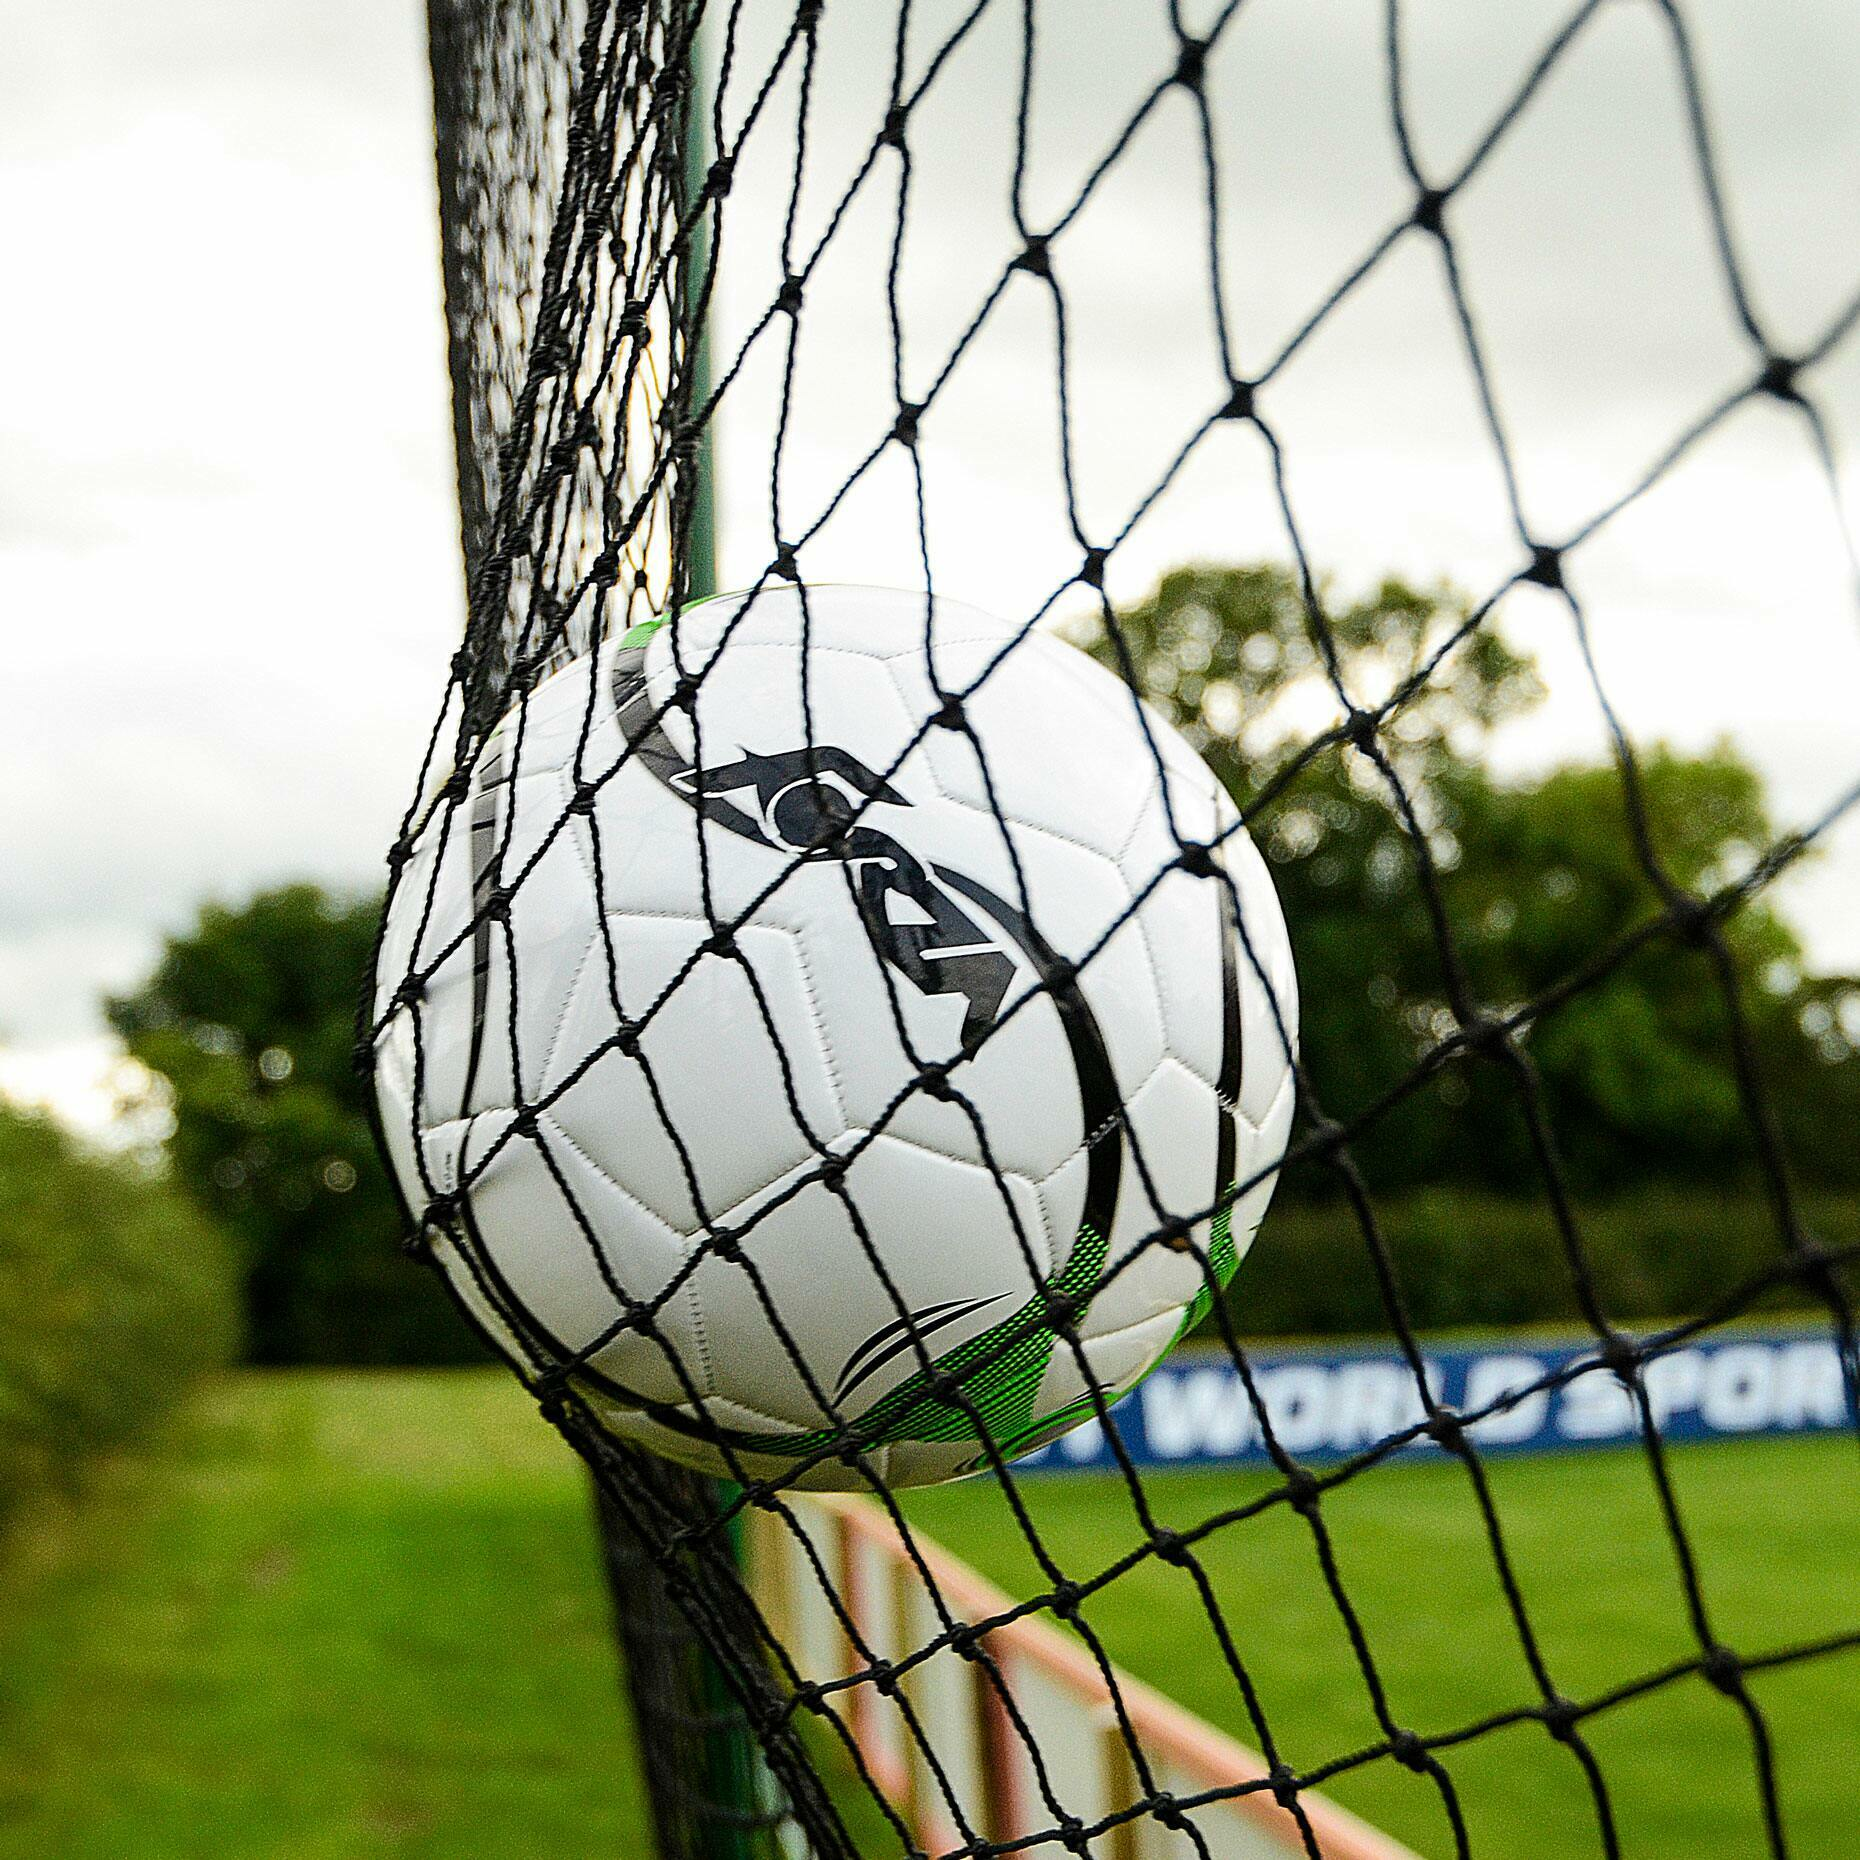 Premium-Grade HDPP Sports Netting | Custom Length Netting